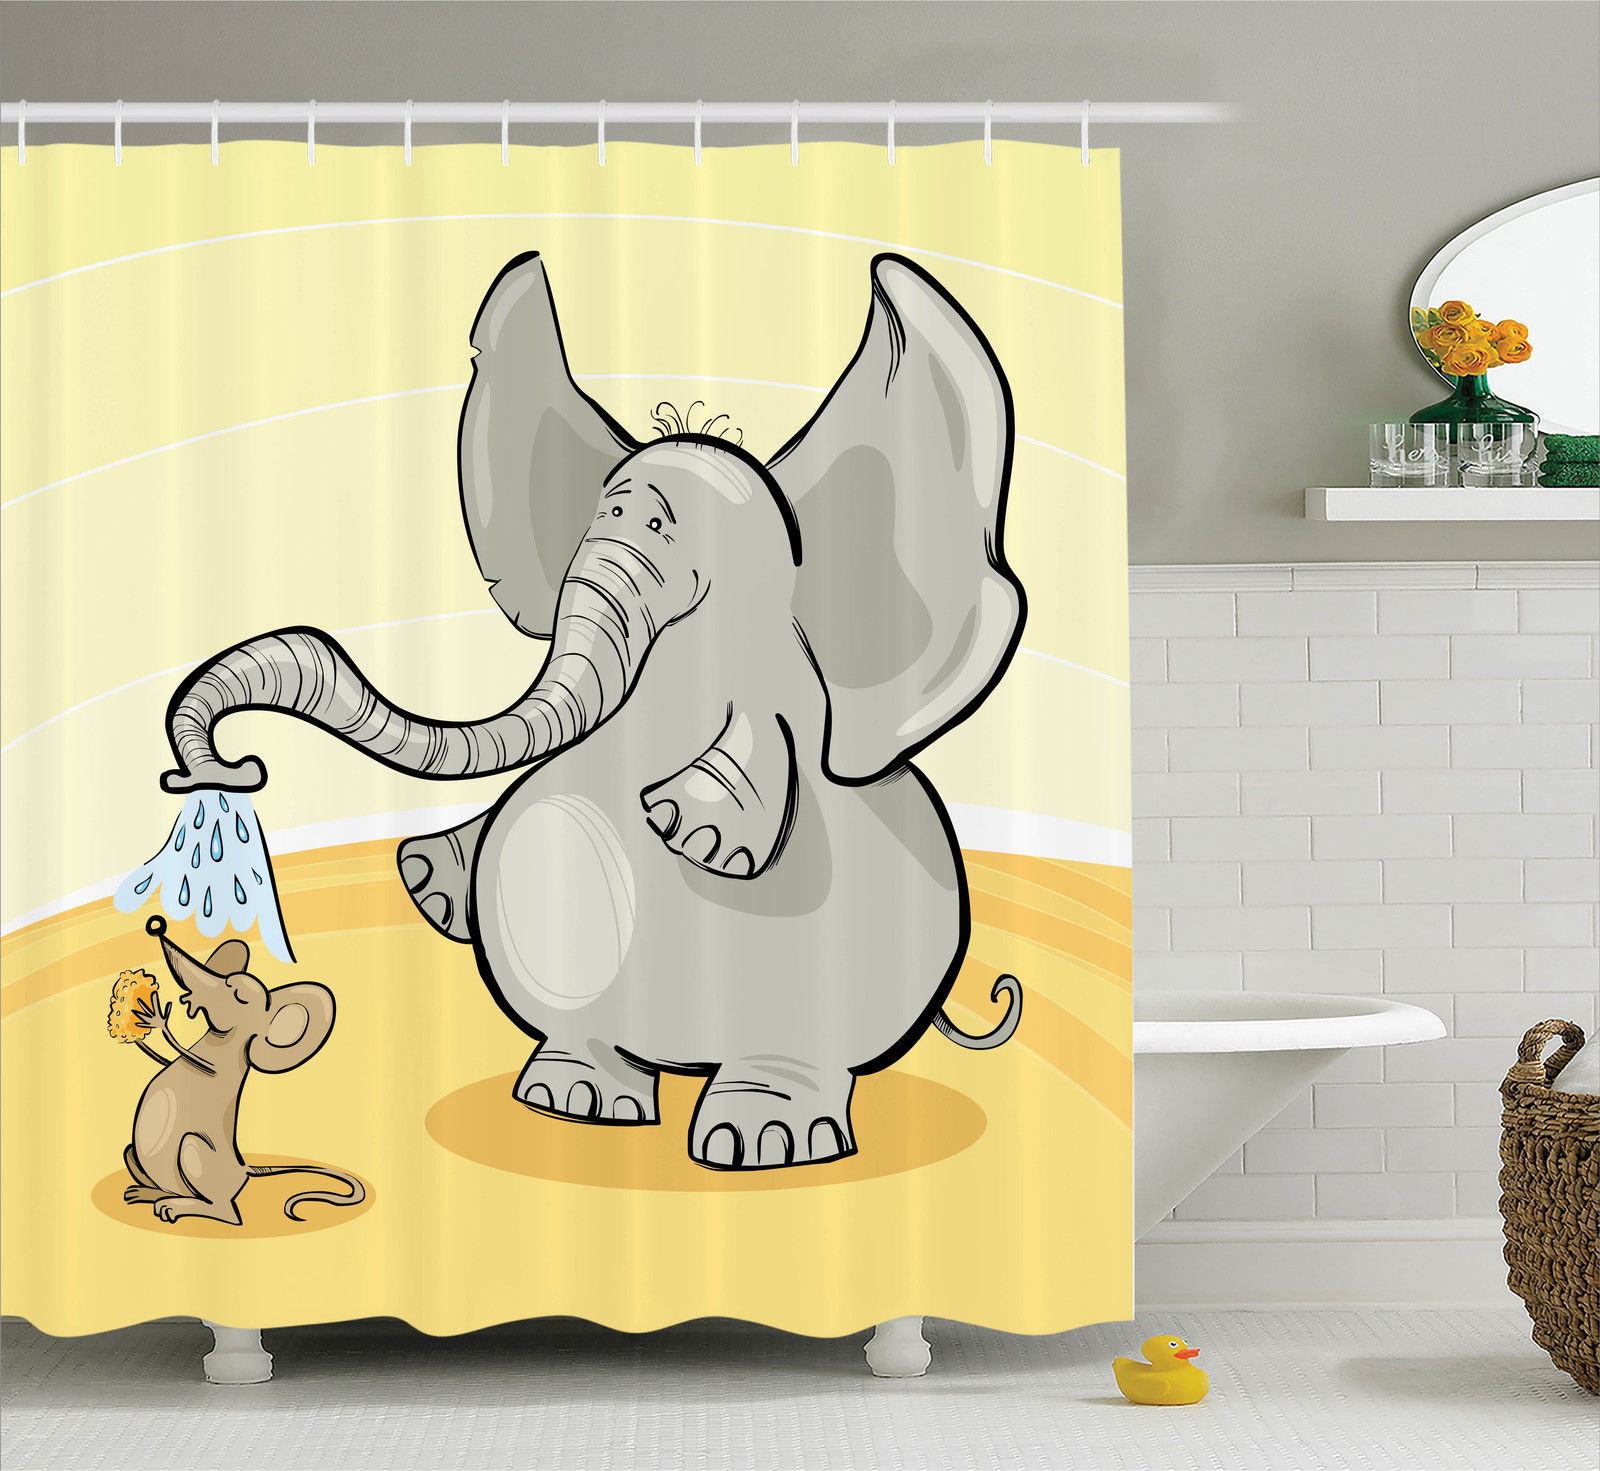 Elephants Decor Shower Curtain Set, Elephant Bathing Mouse With Trunk In The Desert Cartoon Animal Print Kids Decor, Bathroom Accessories, 69W X 70L Inches, By Ambesonne